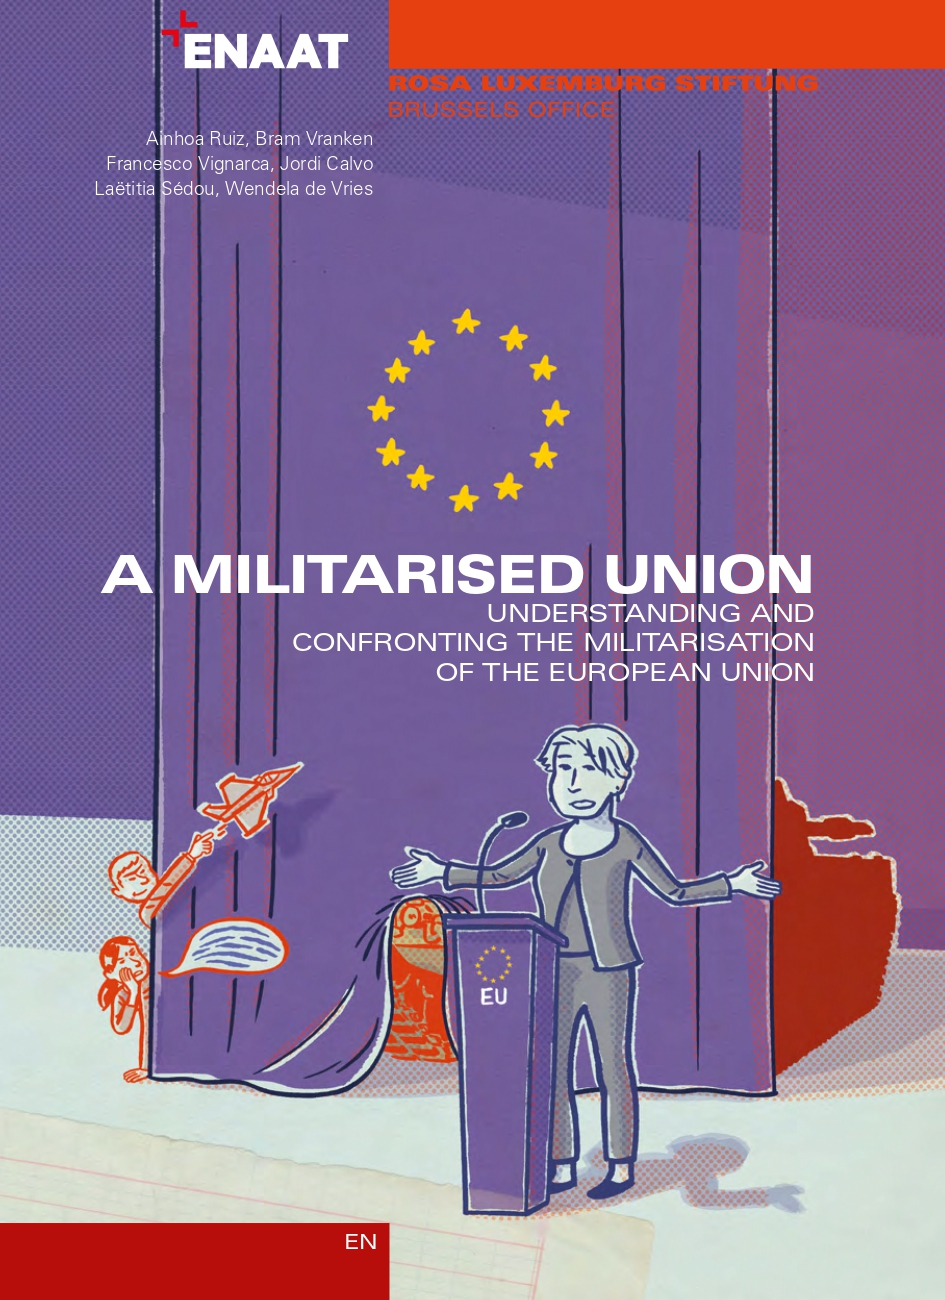 A militarised Union. Understanding and confronting the militarisation of the European Union